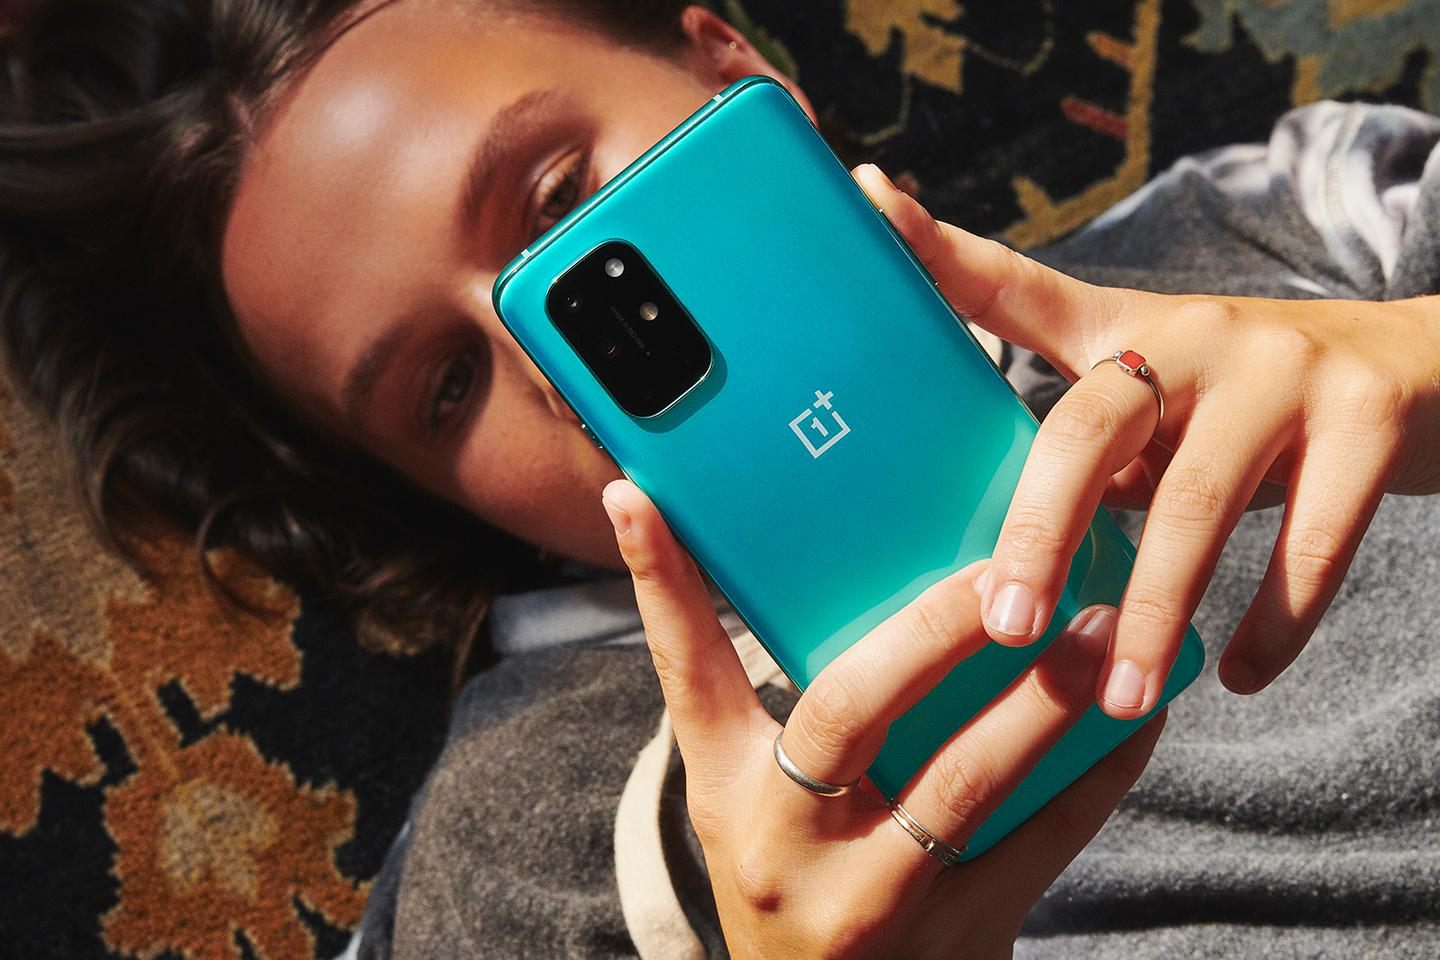 This is the OnePlus 8T, which should get a successor around March time